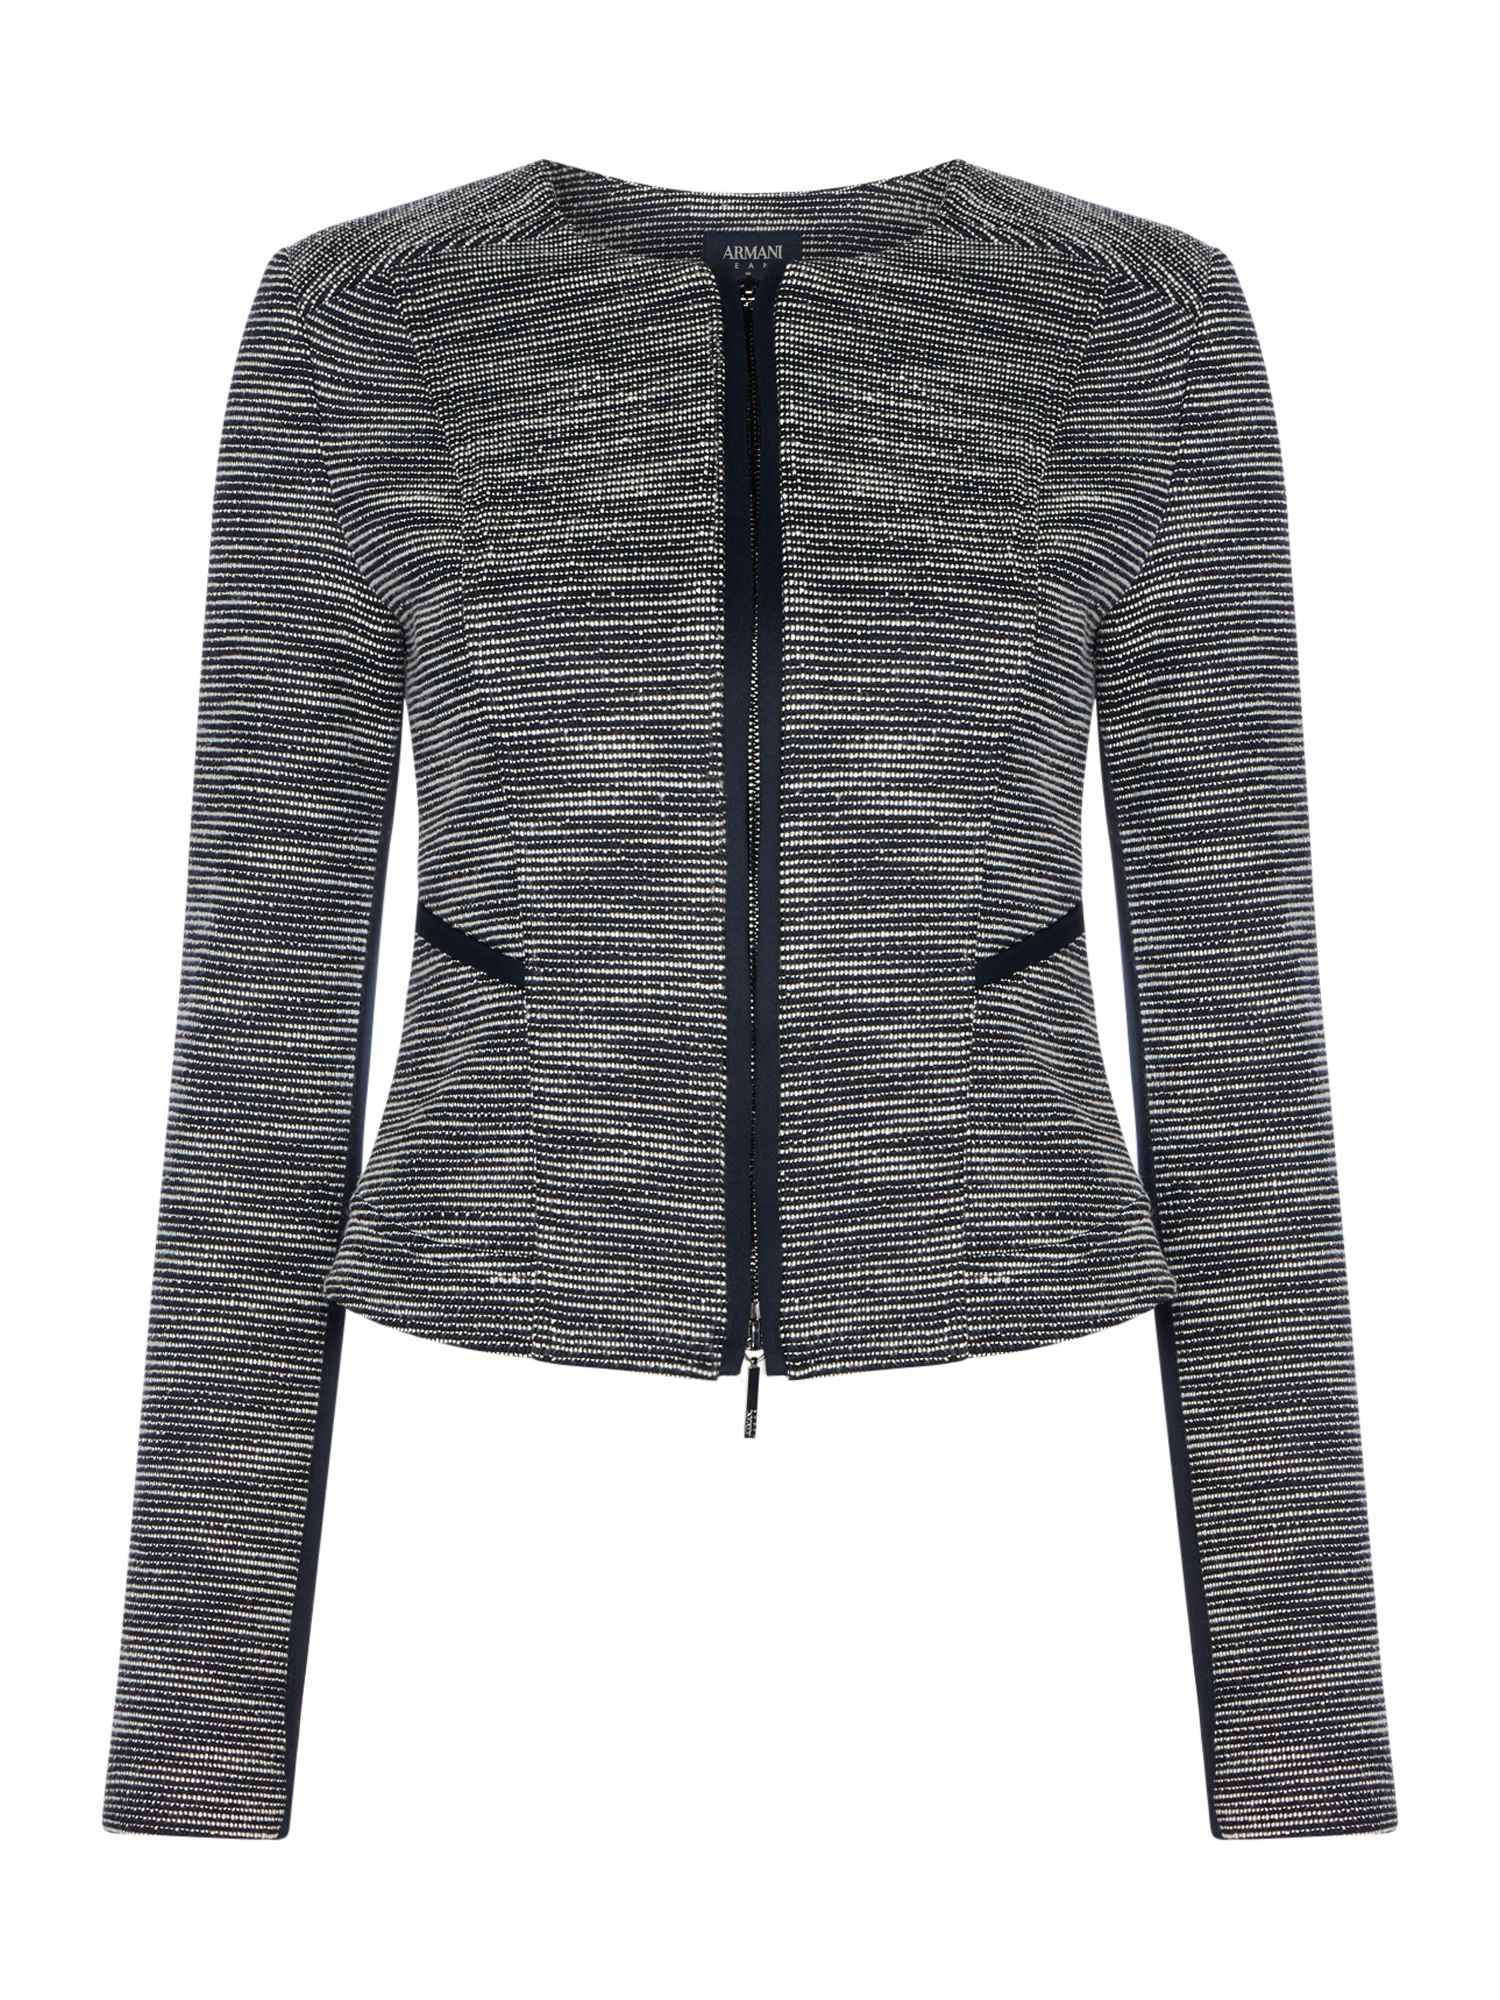 Armani Jeans Crew neck jacket in fantasia blu notte, Blue